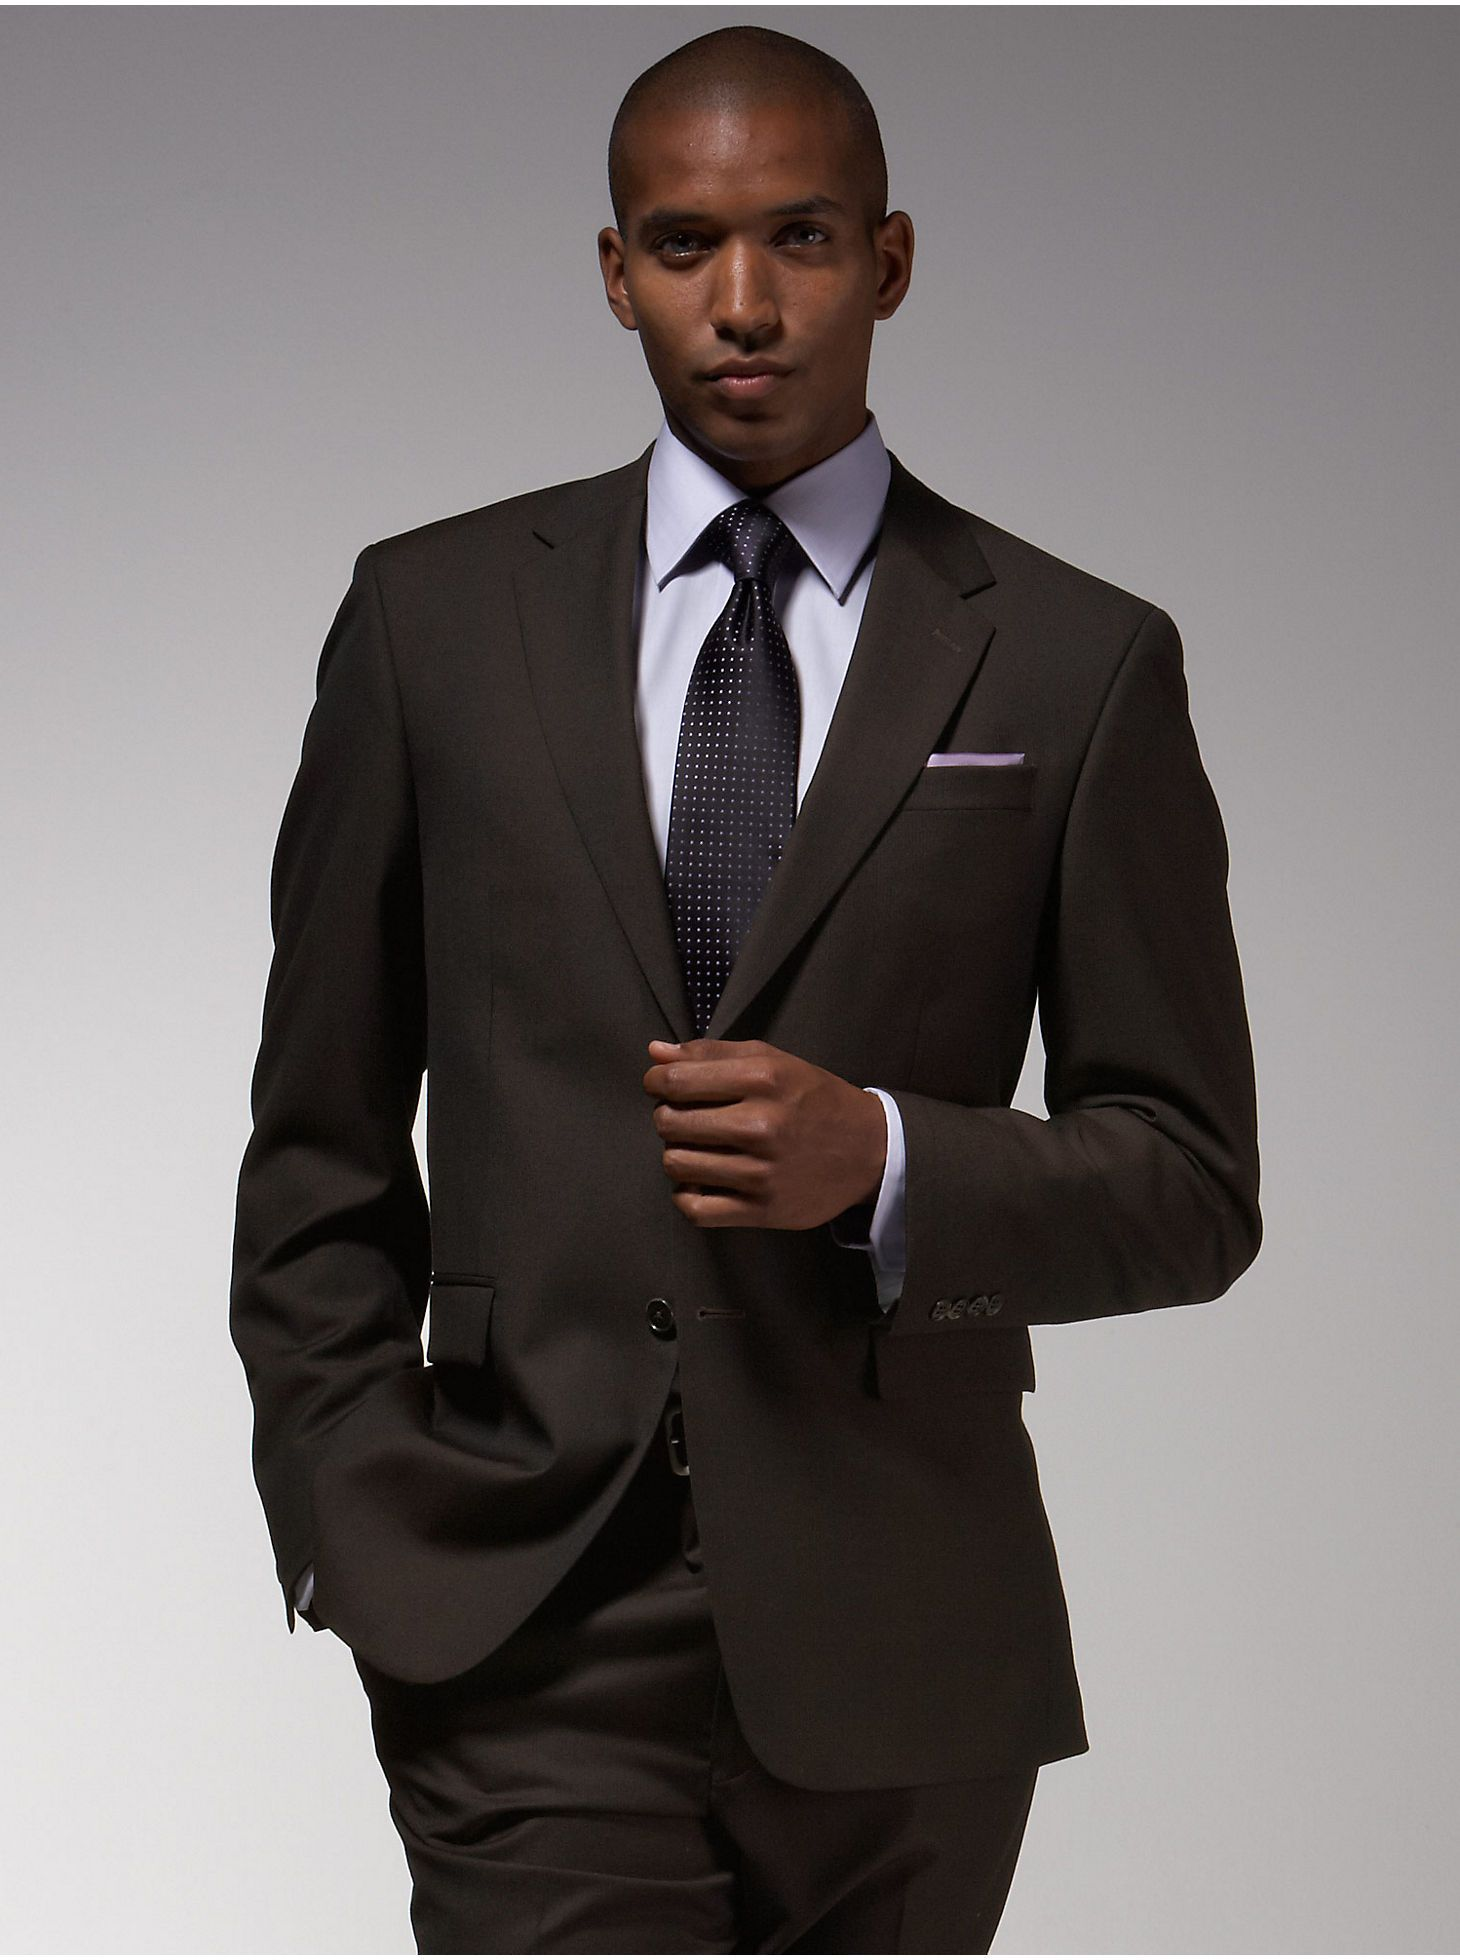 b7d1240f6800 Kenneth Cole Brown Suit - Men's Wearhouse | Wedding Ideas | Brown ...